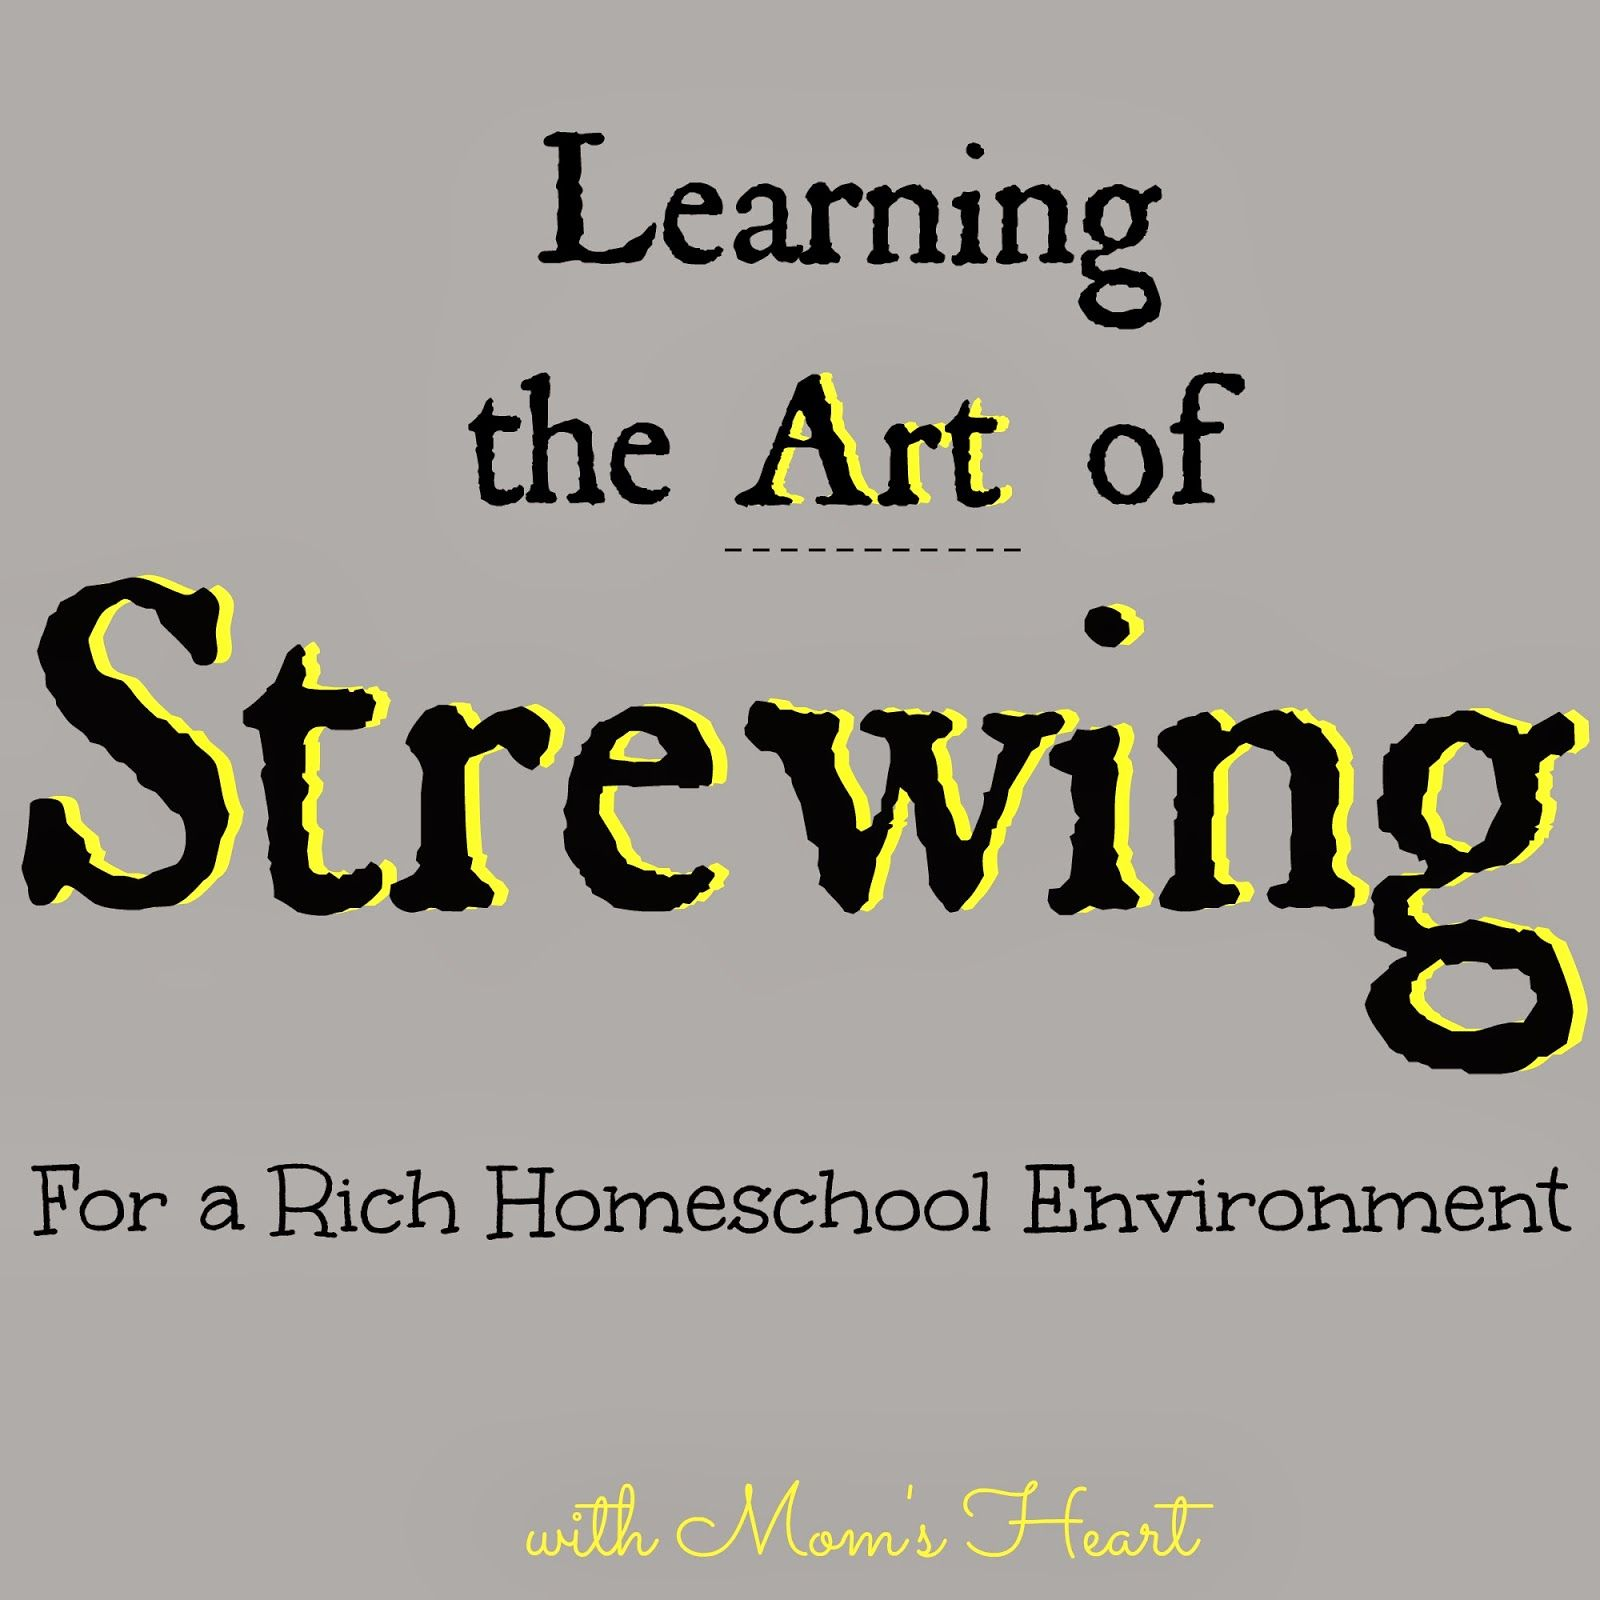 Learning the Art of Strewing